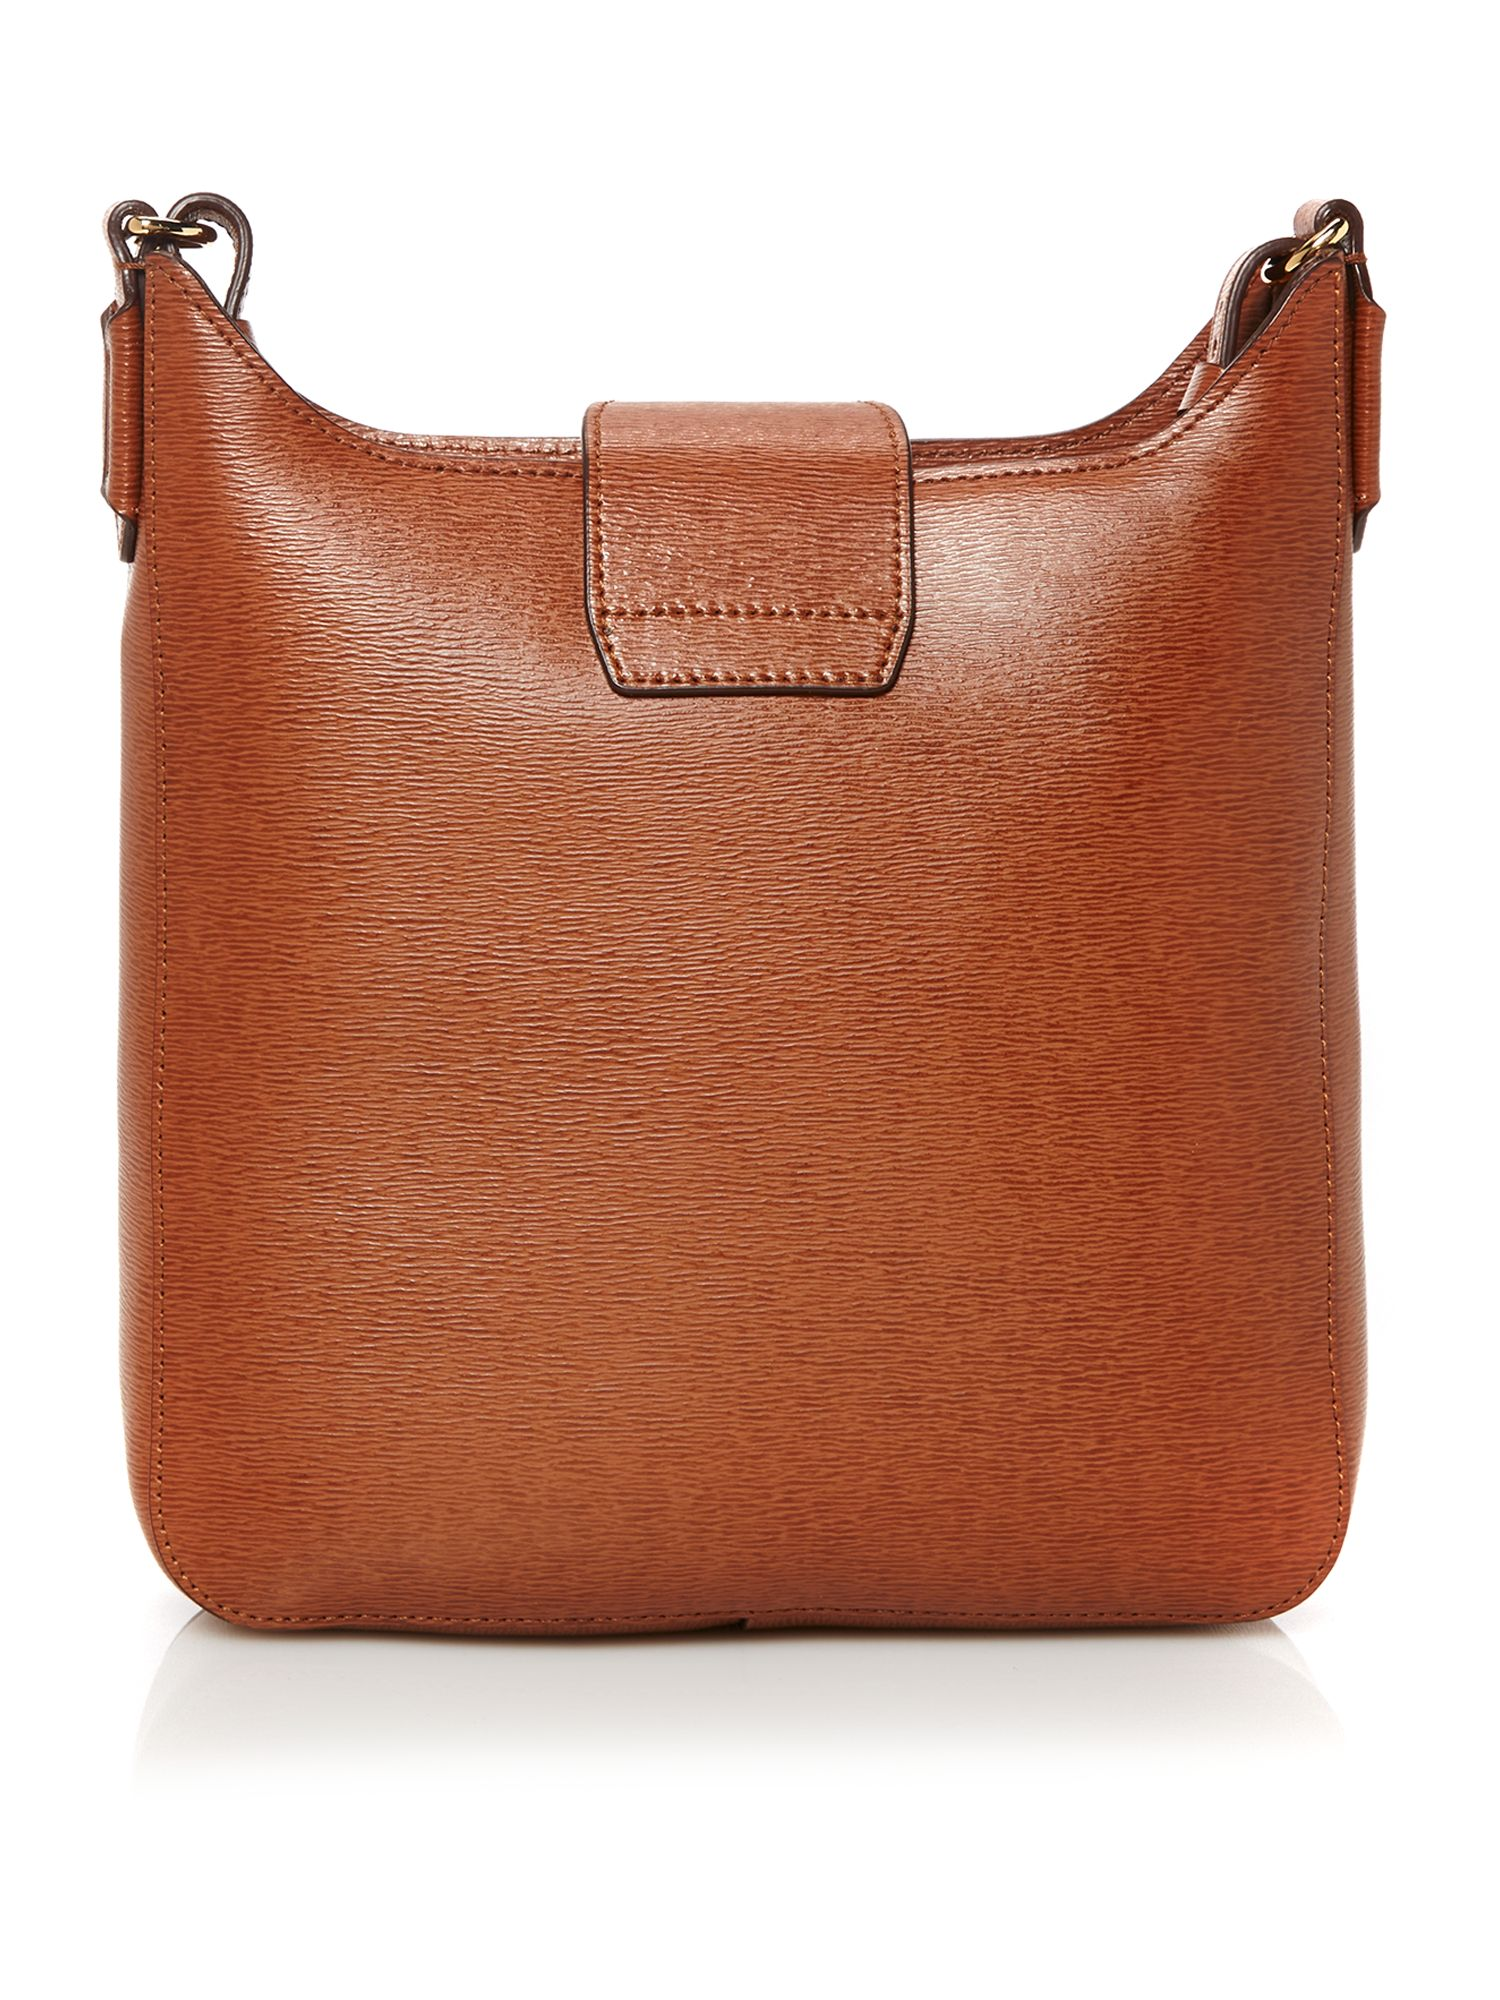 Tate tan crossbody bag